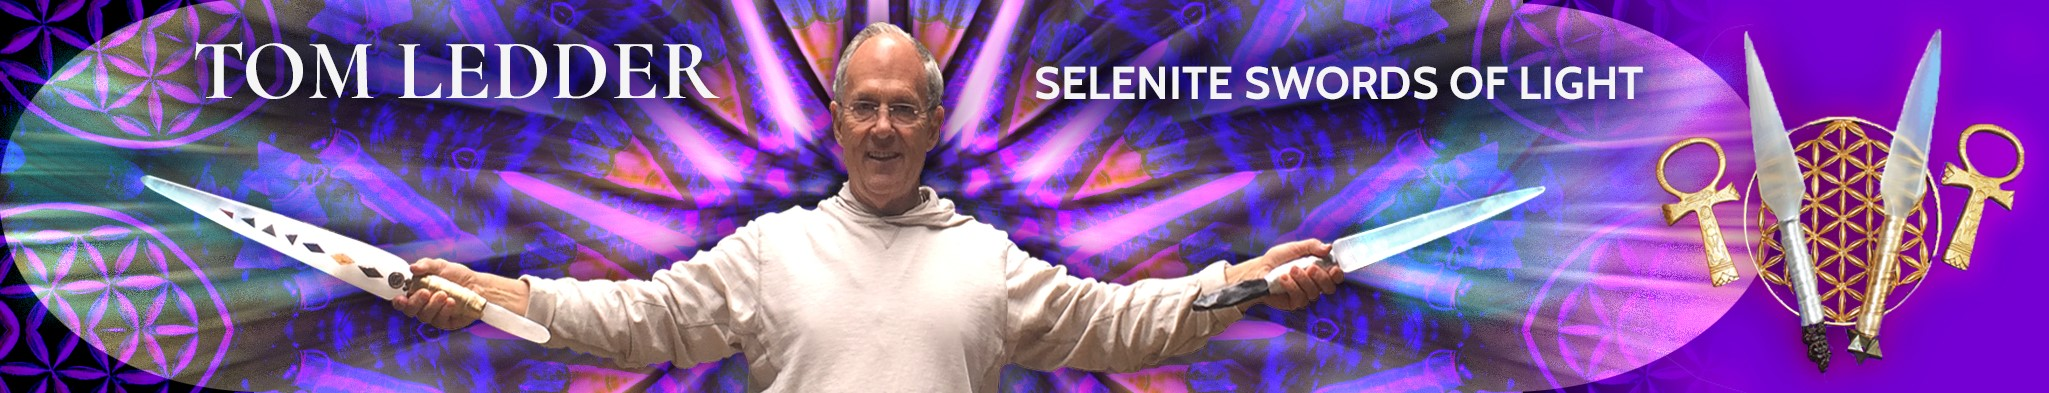 Welcome to Header Selenite Swords of Light